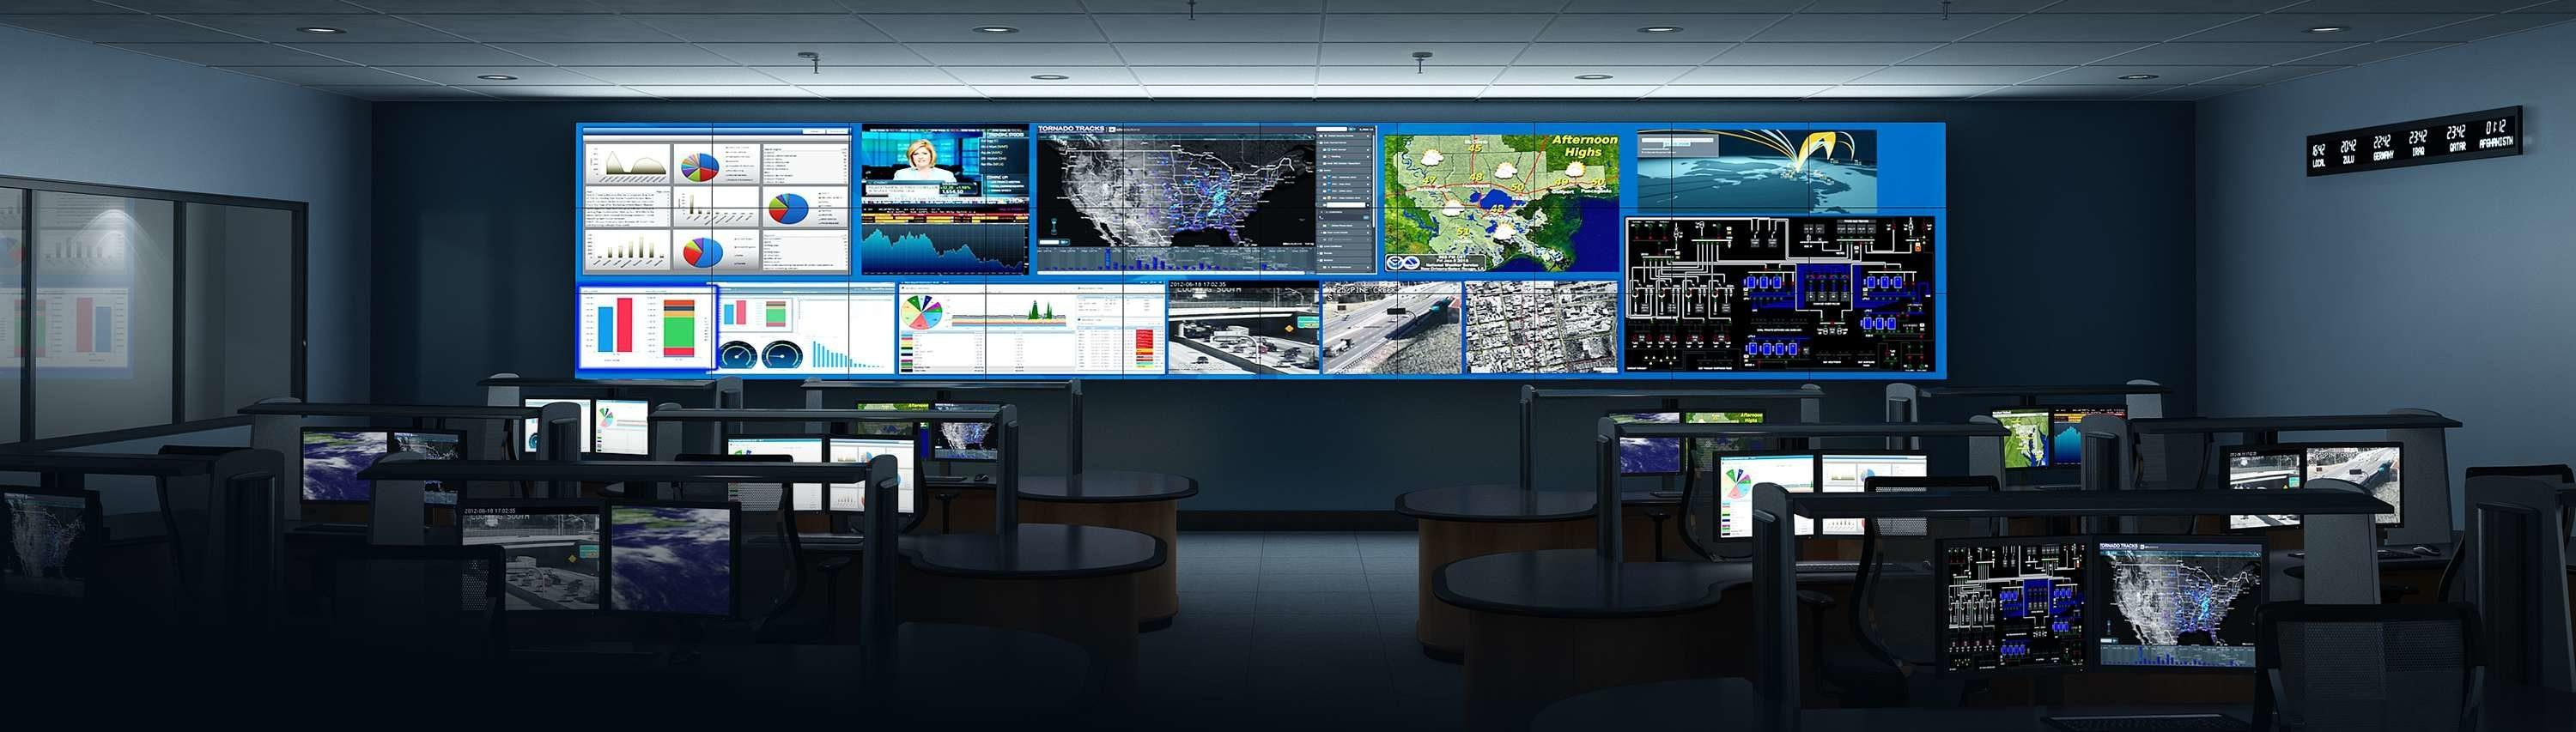 Utilities Process Control Display Systems Scada